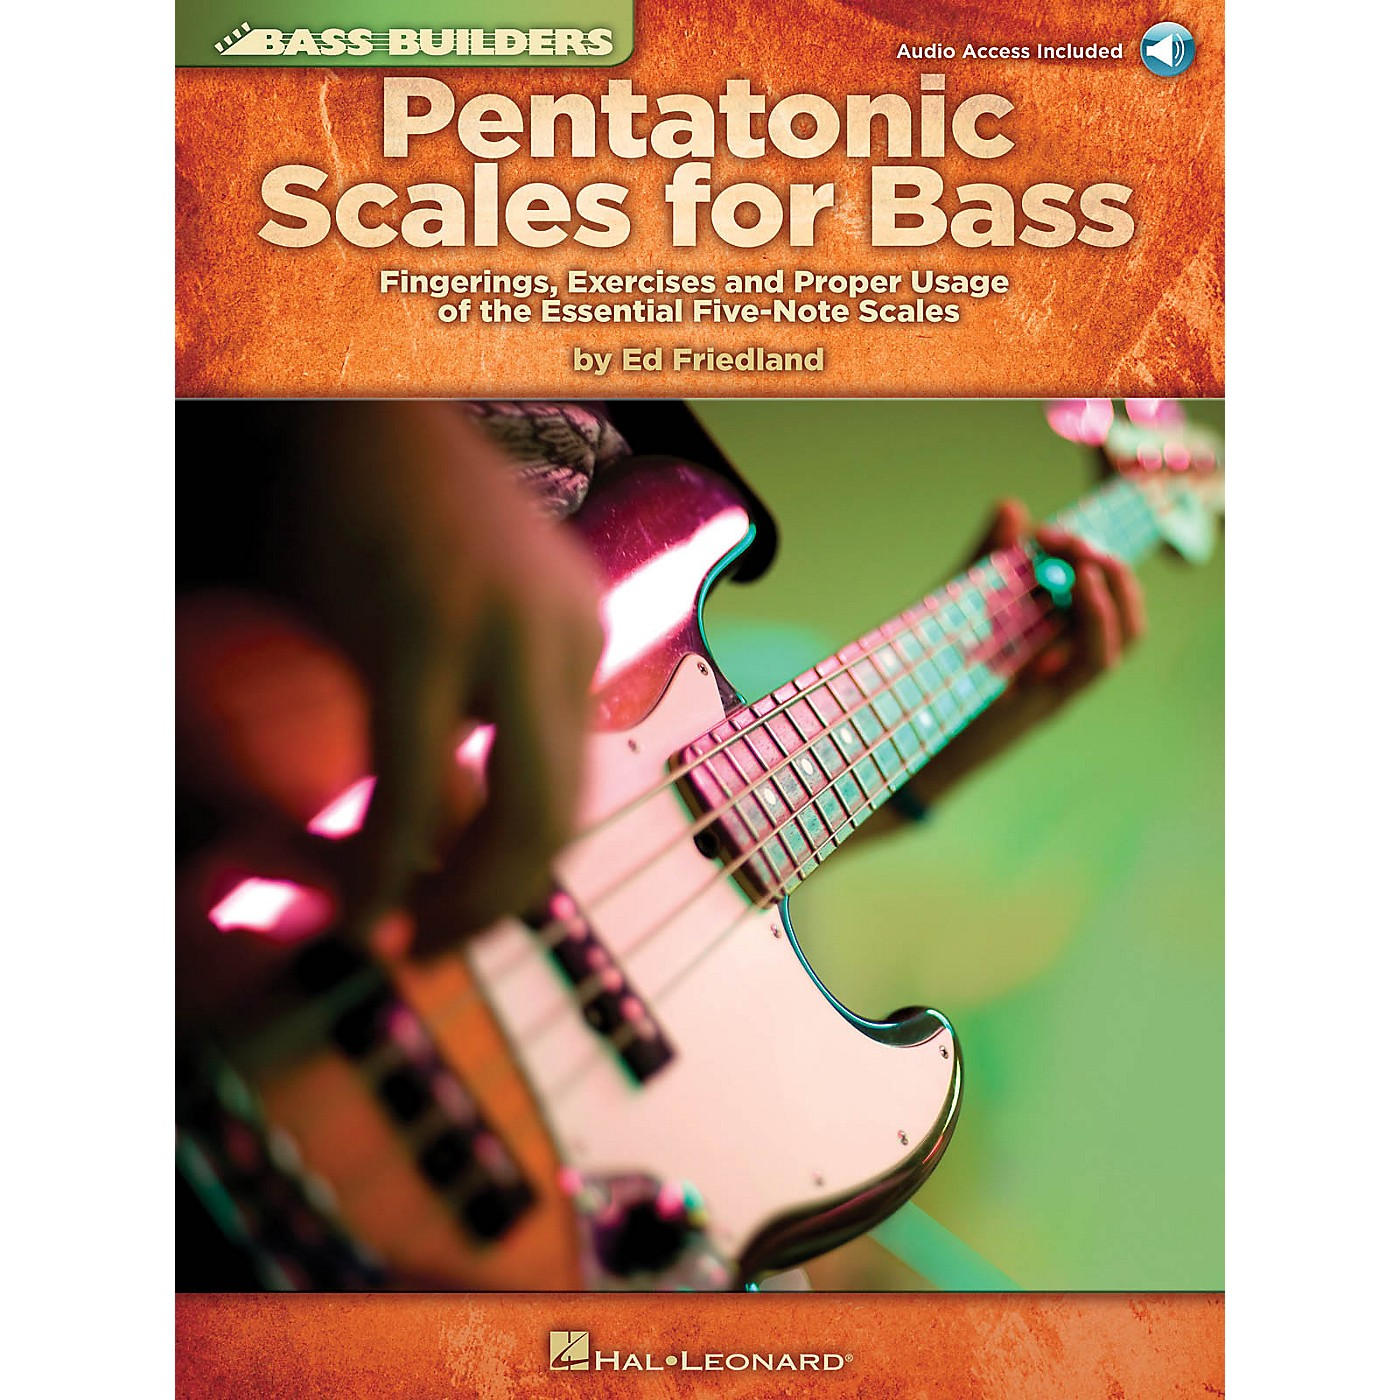 Hal Leonard Pentatonic Scales for Bass Bass Builders Series Softcover Audio Online Written by Ed Friedland thumbnail